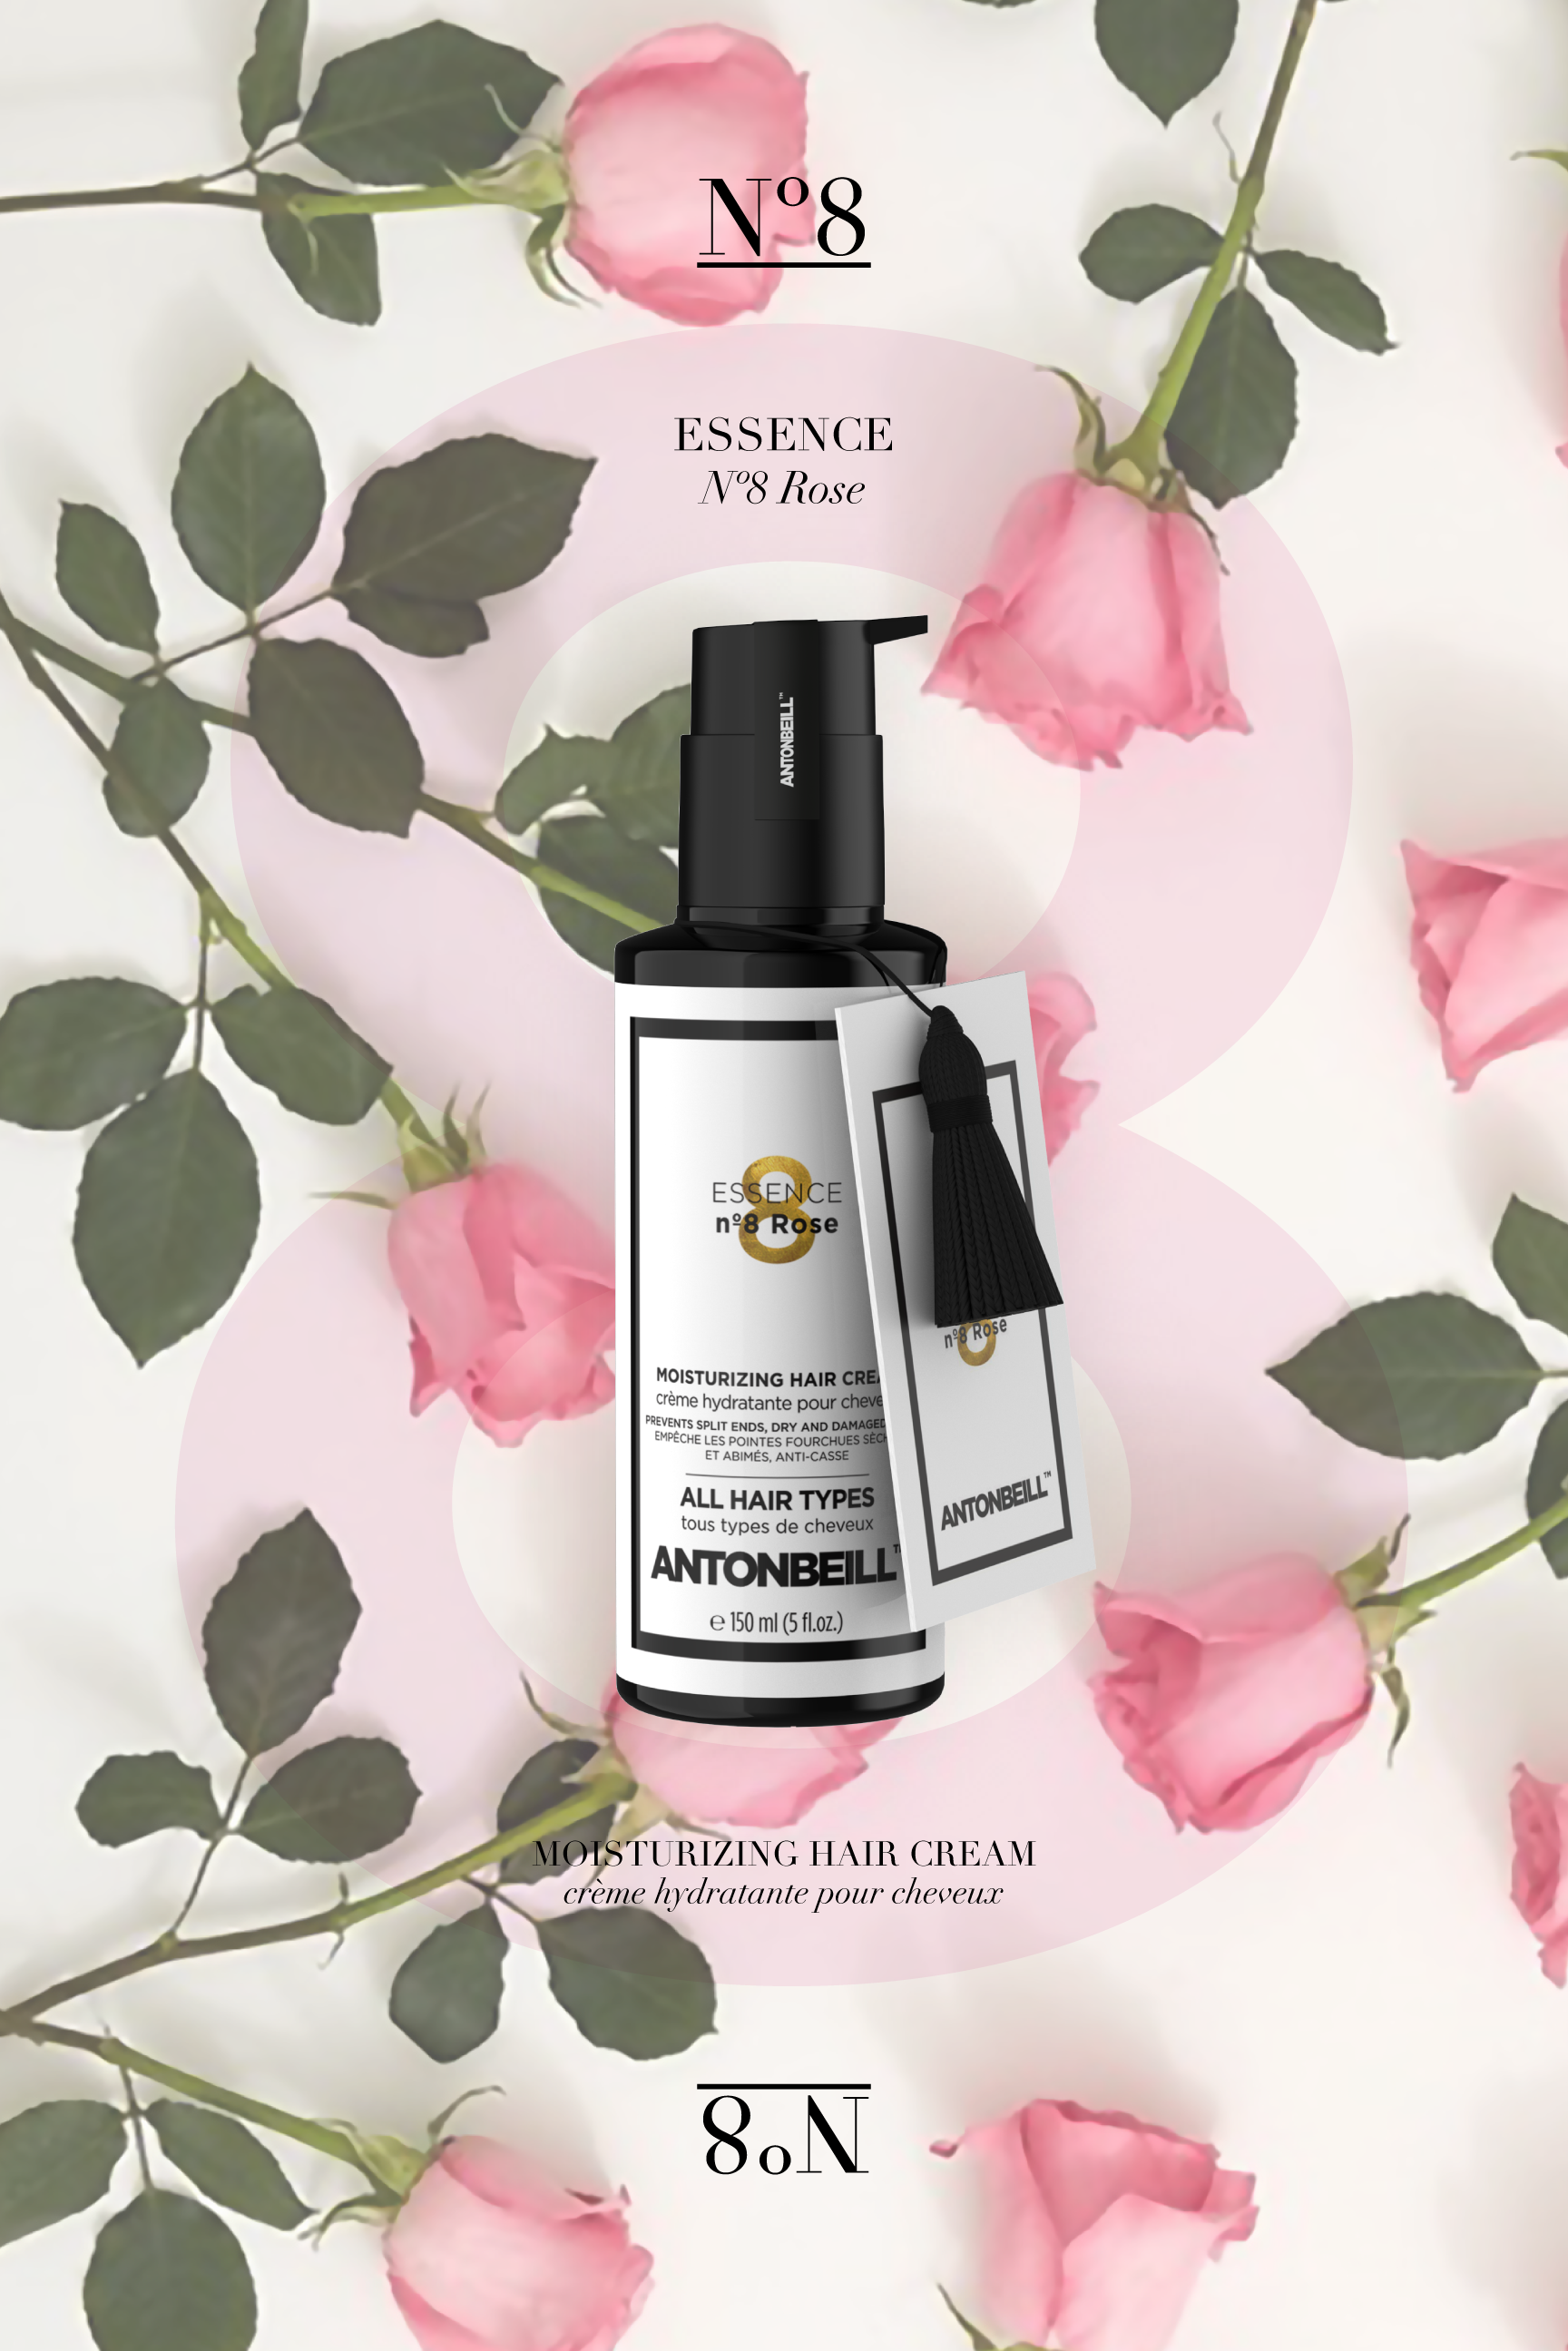 Essence nº8 rose - Protecting, Nourishing & Moisturizing Effect